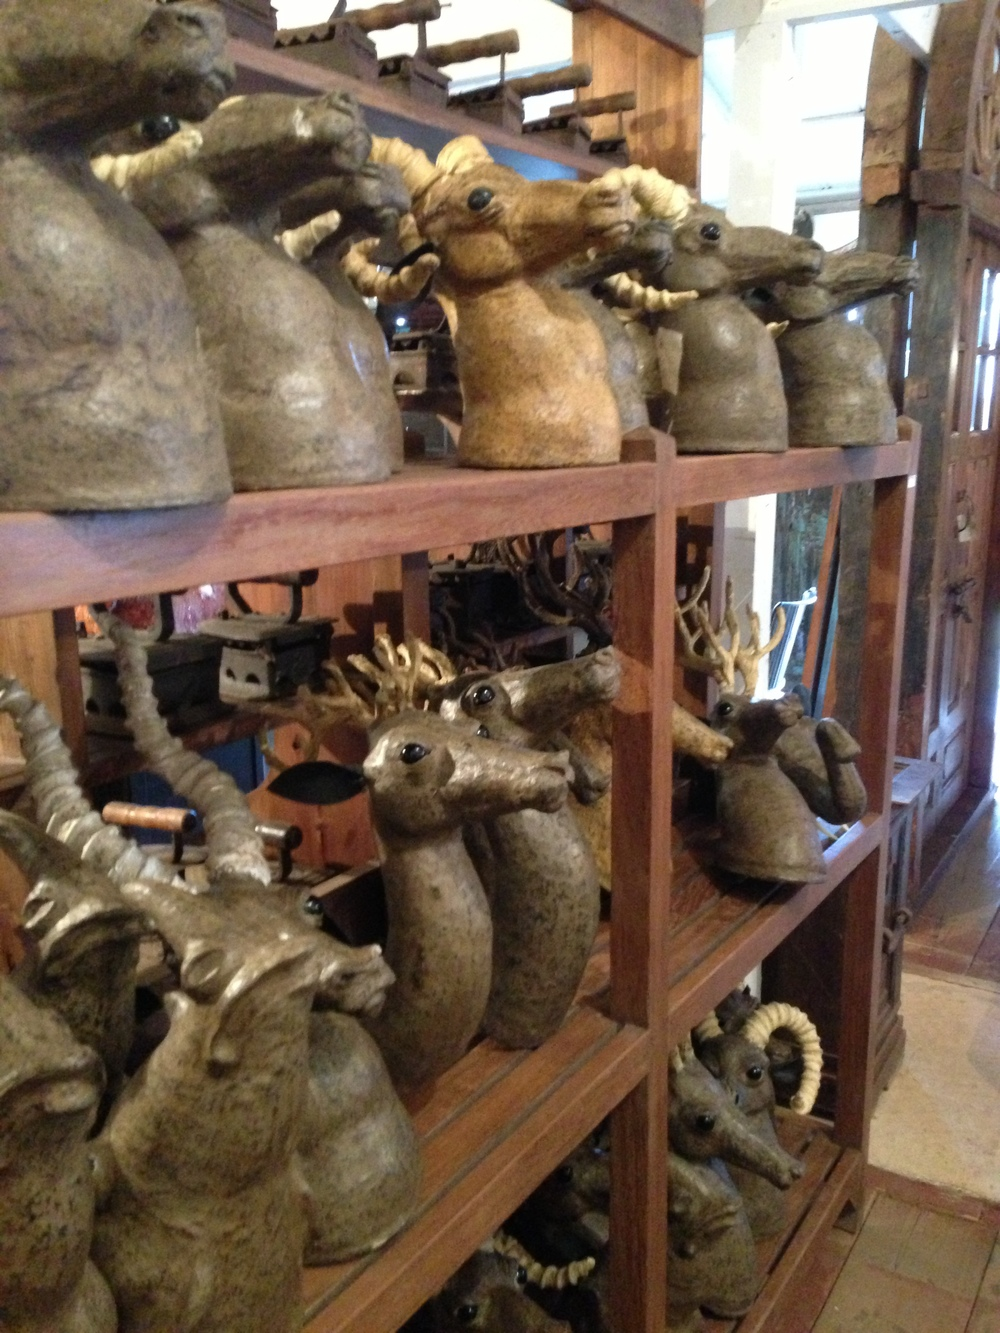 Antique furniture, decor; deer head molds